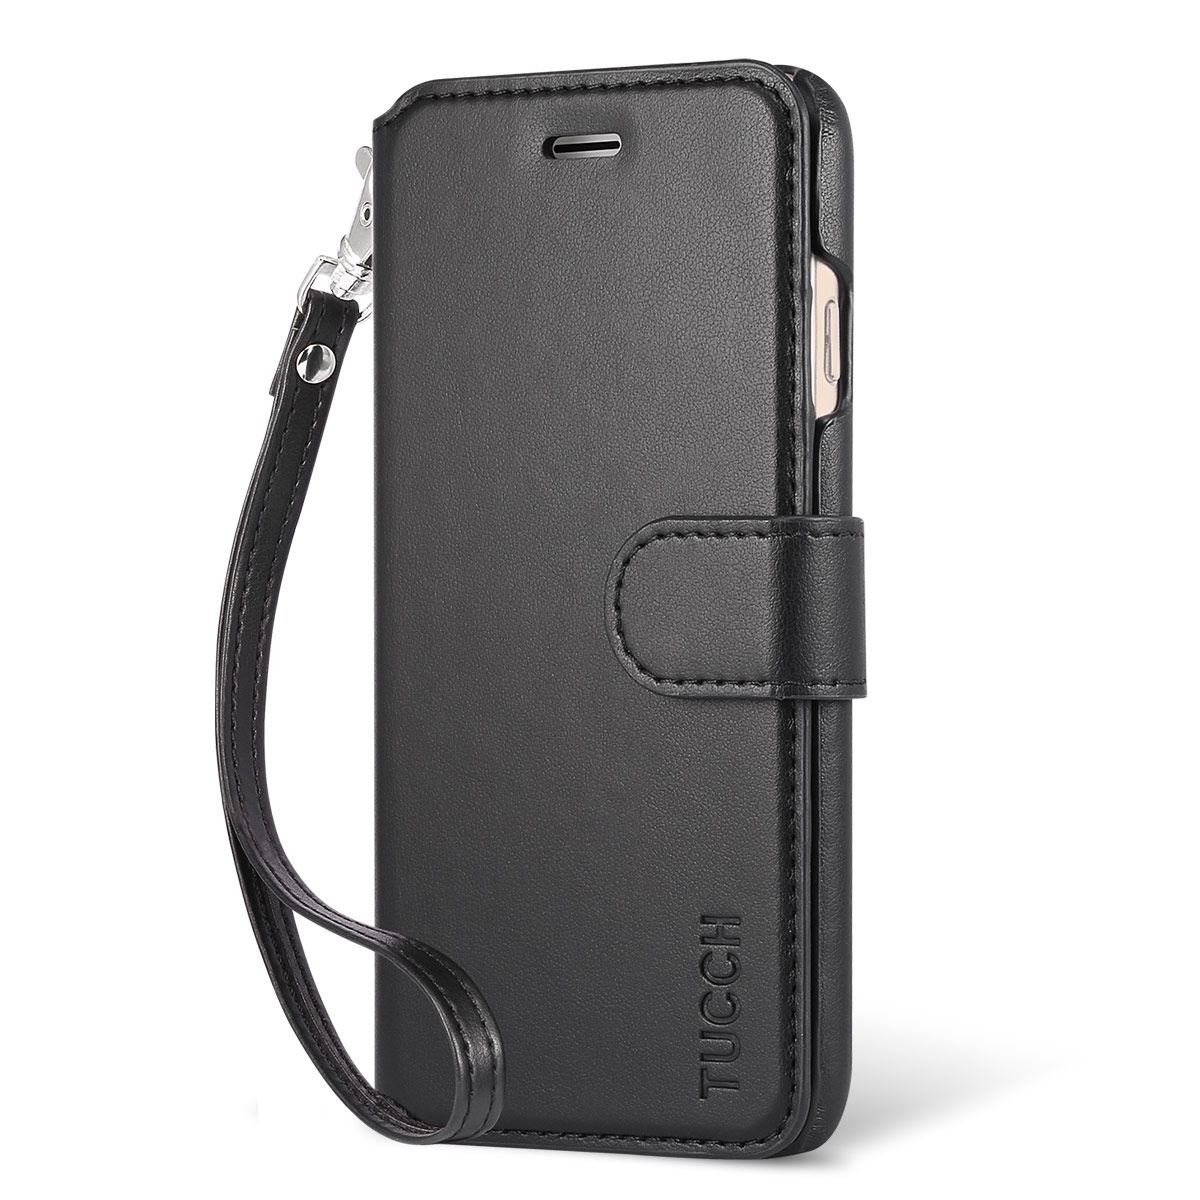 reputable site a79ce c012f TUCCH iPhone 7 Wallet Case, Wrist Strap, PU Leather Case